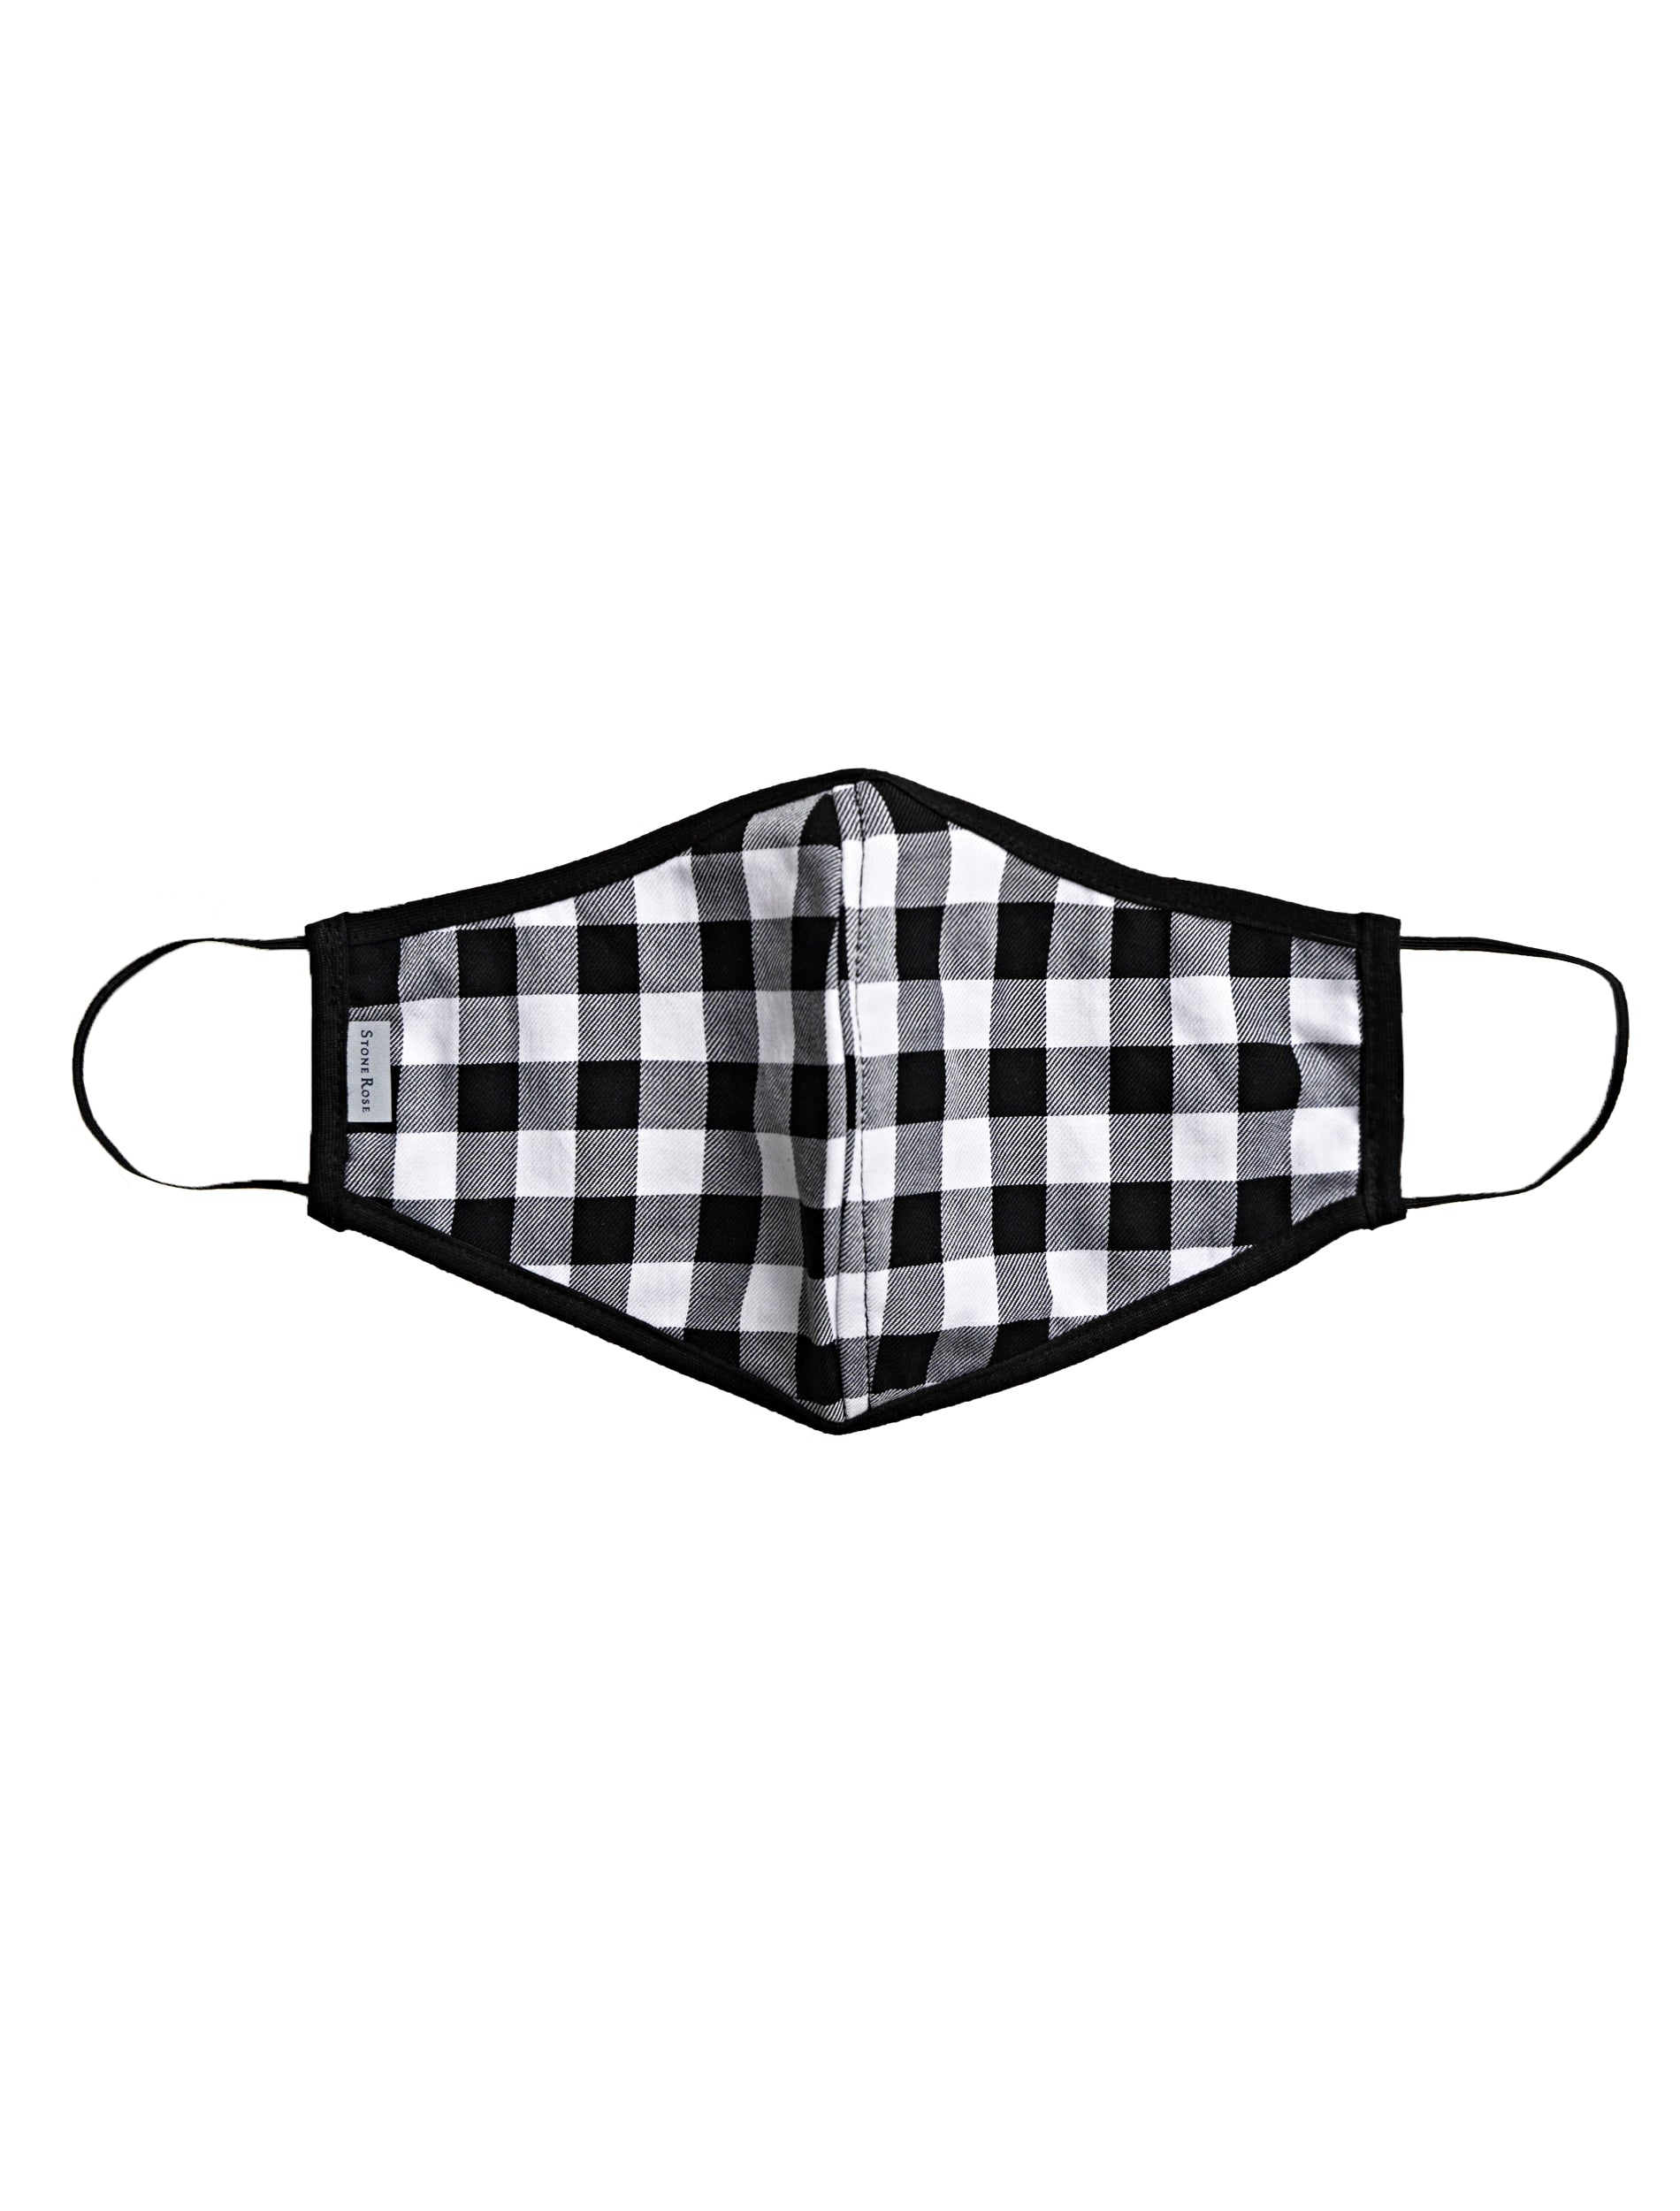 Black and White Check - Reusable Lighweight Face Mask